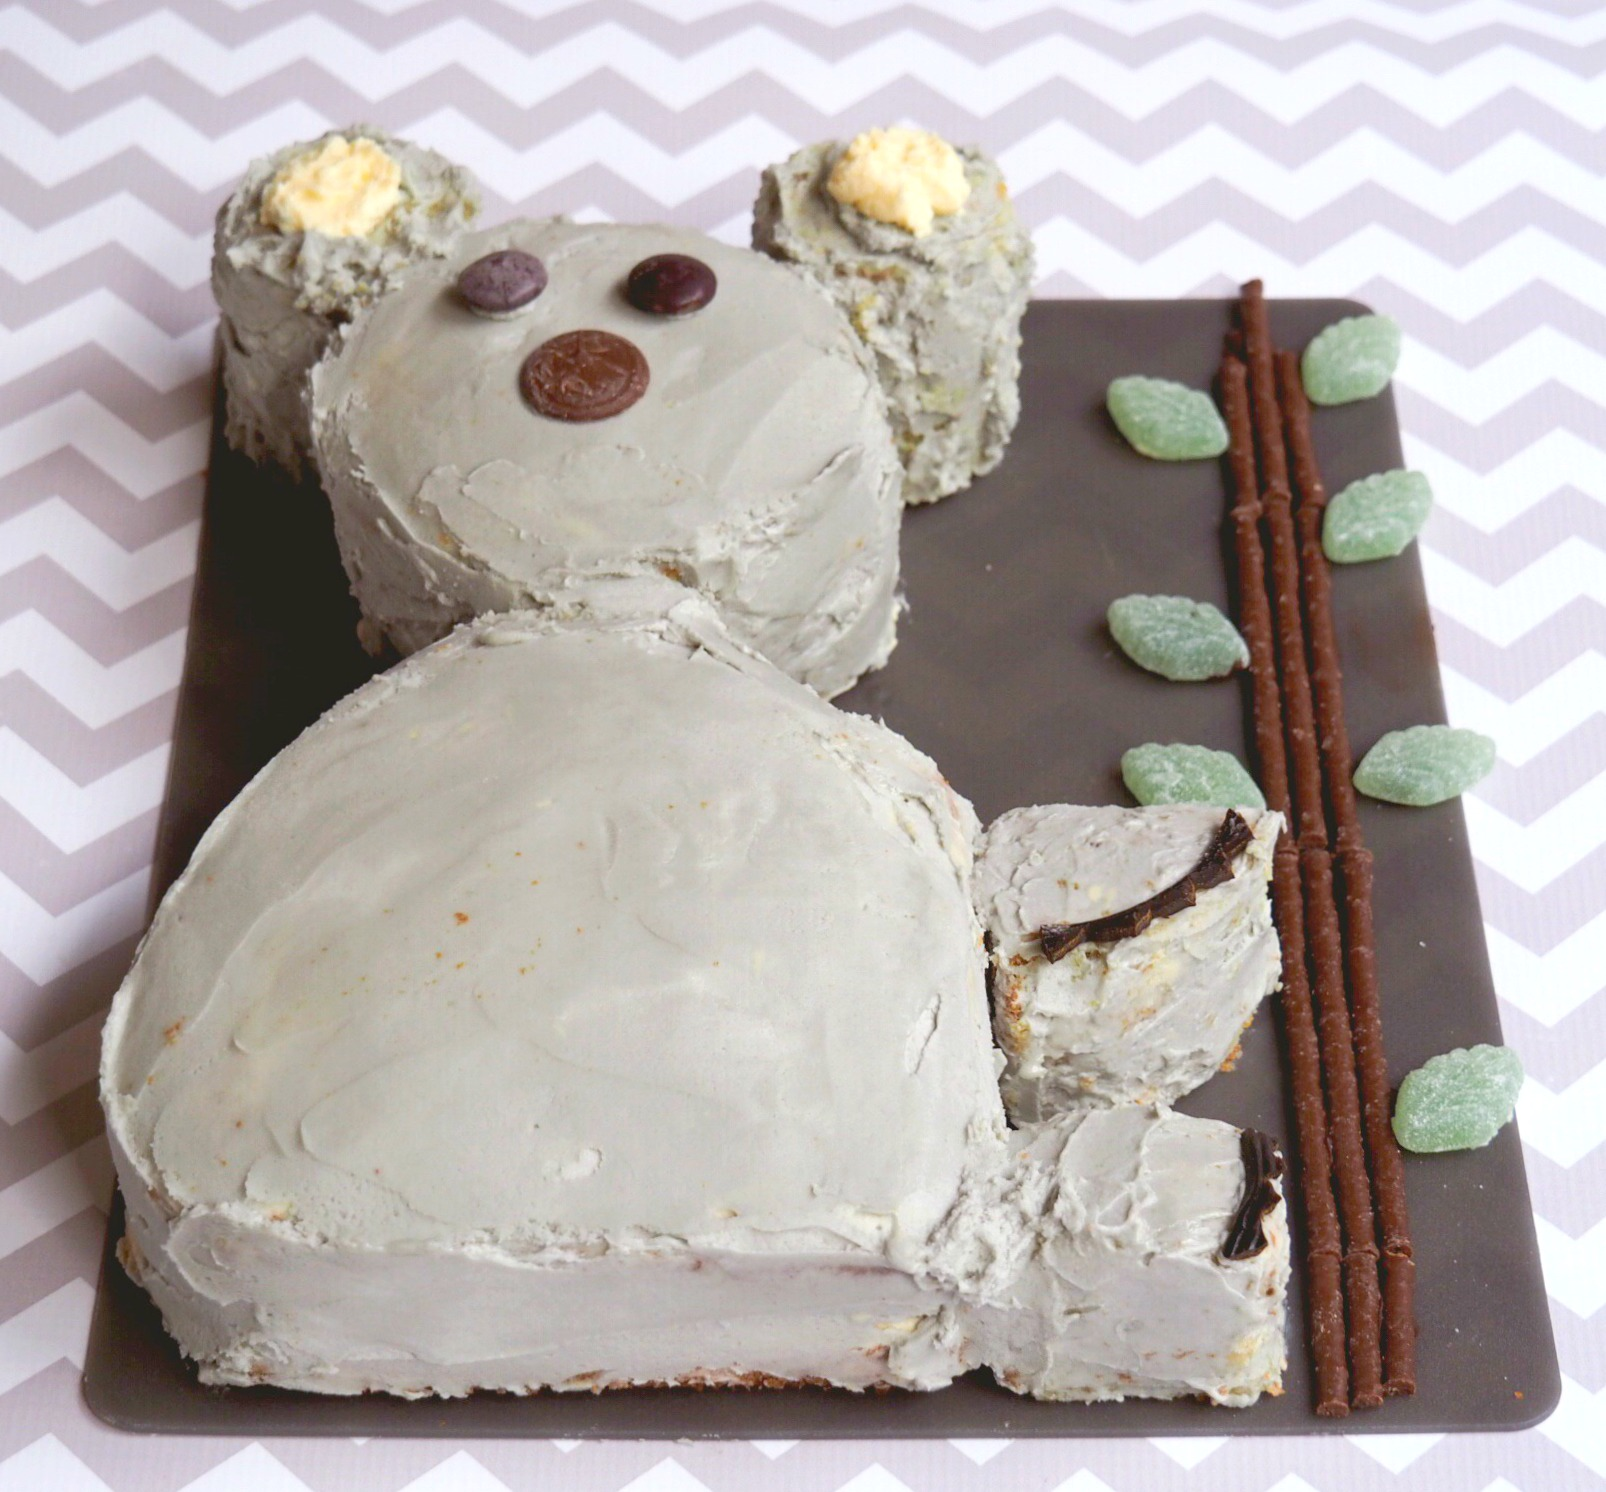 How to make a koala cake 2